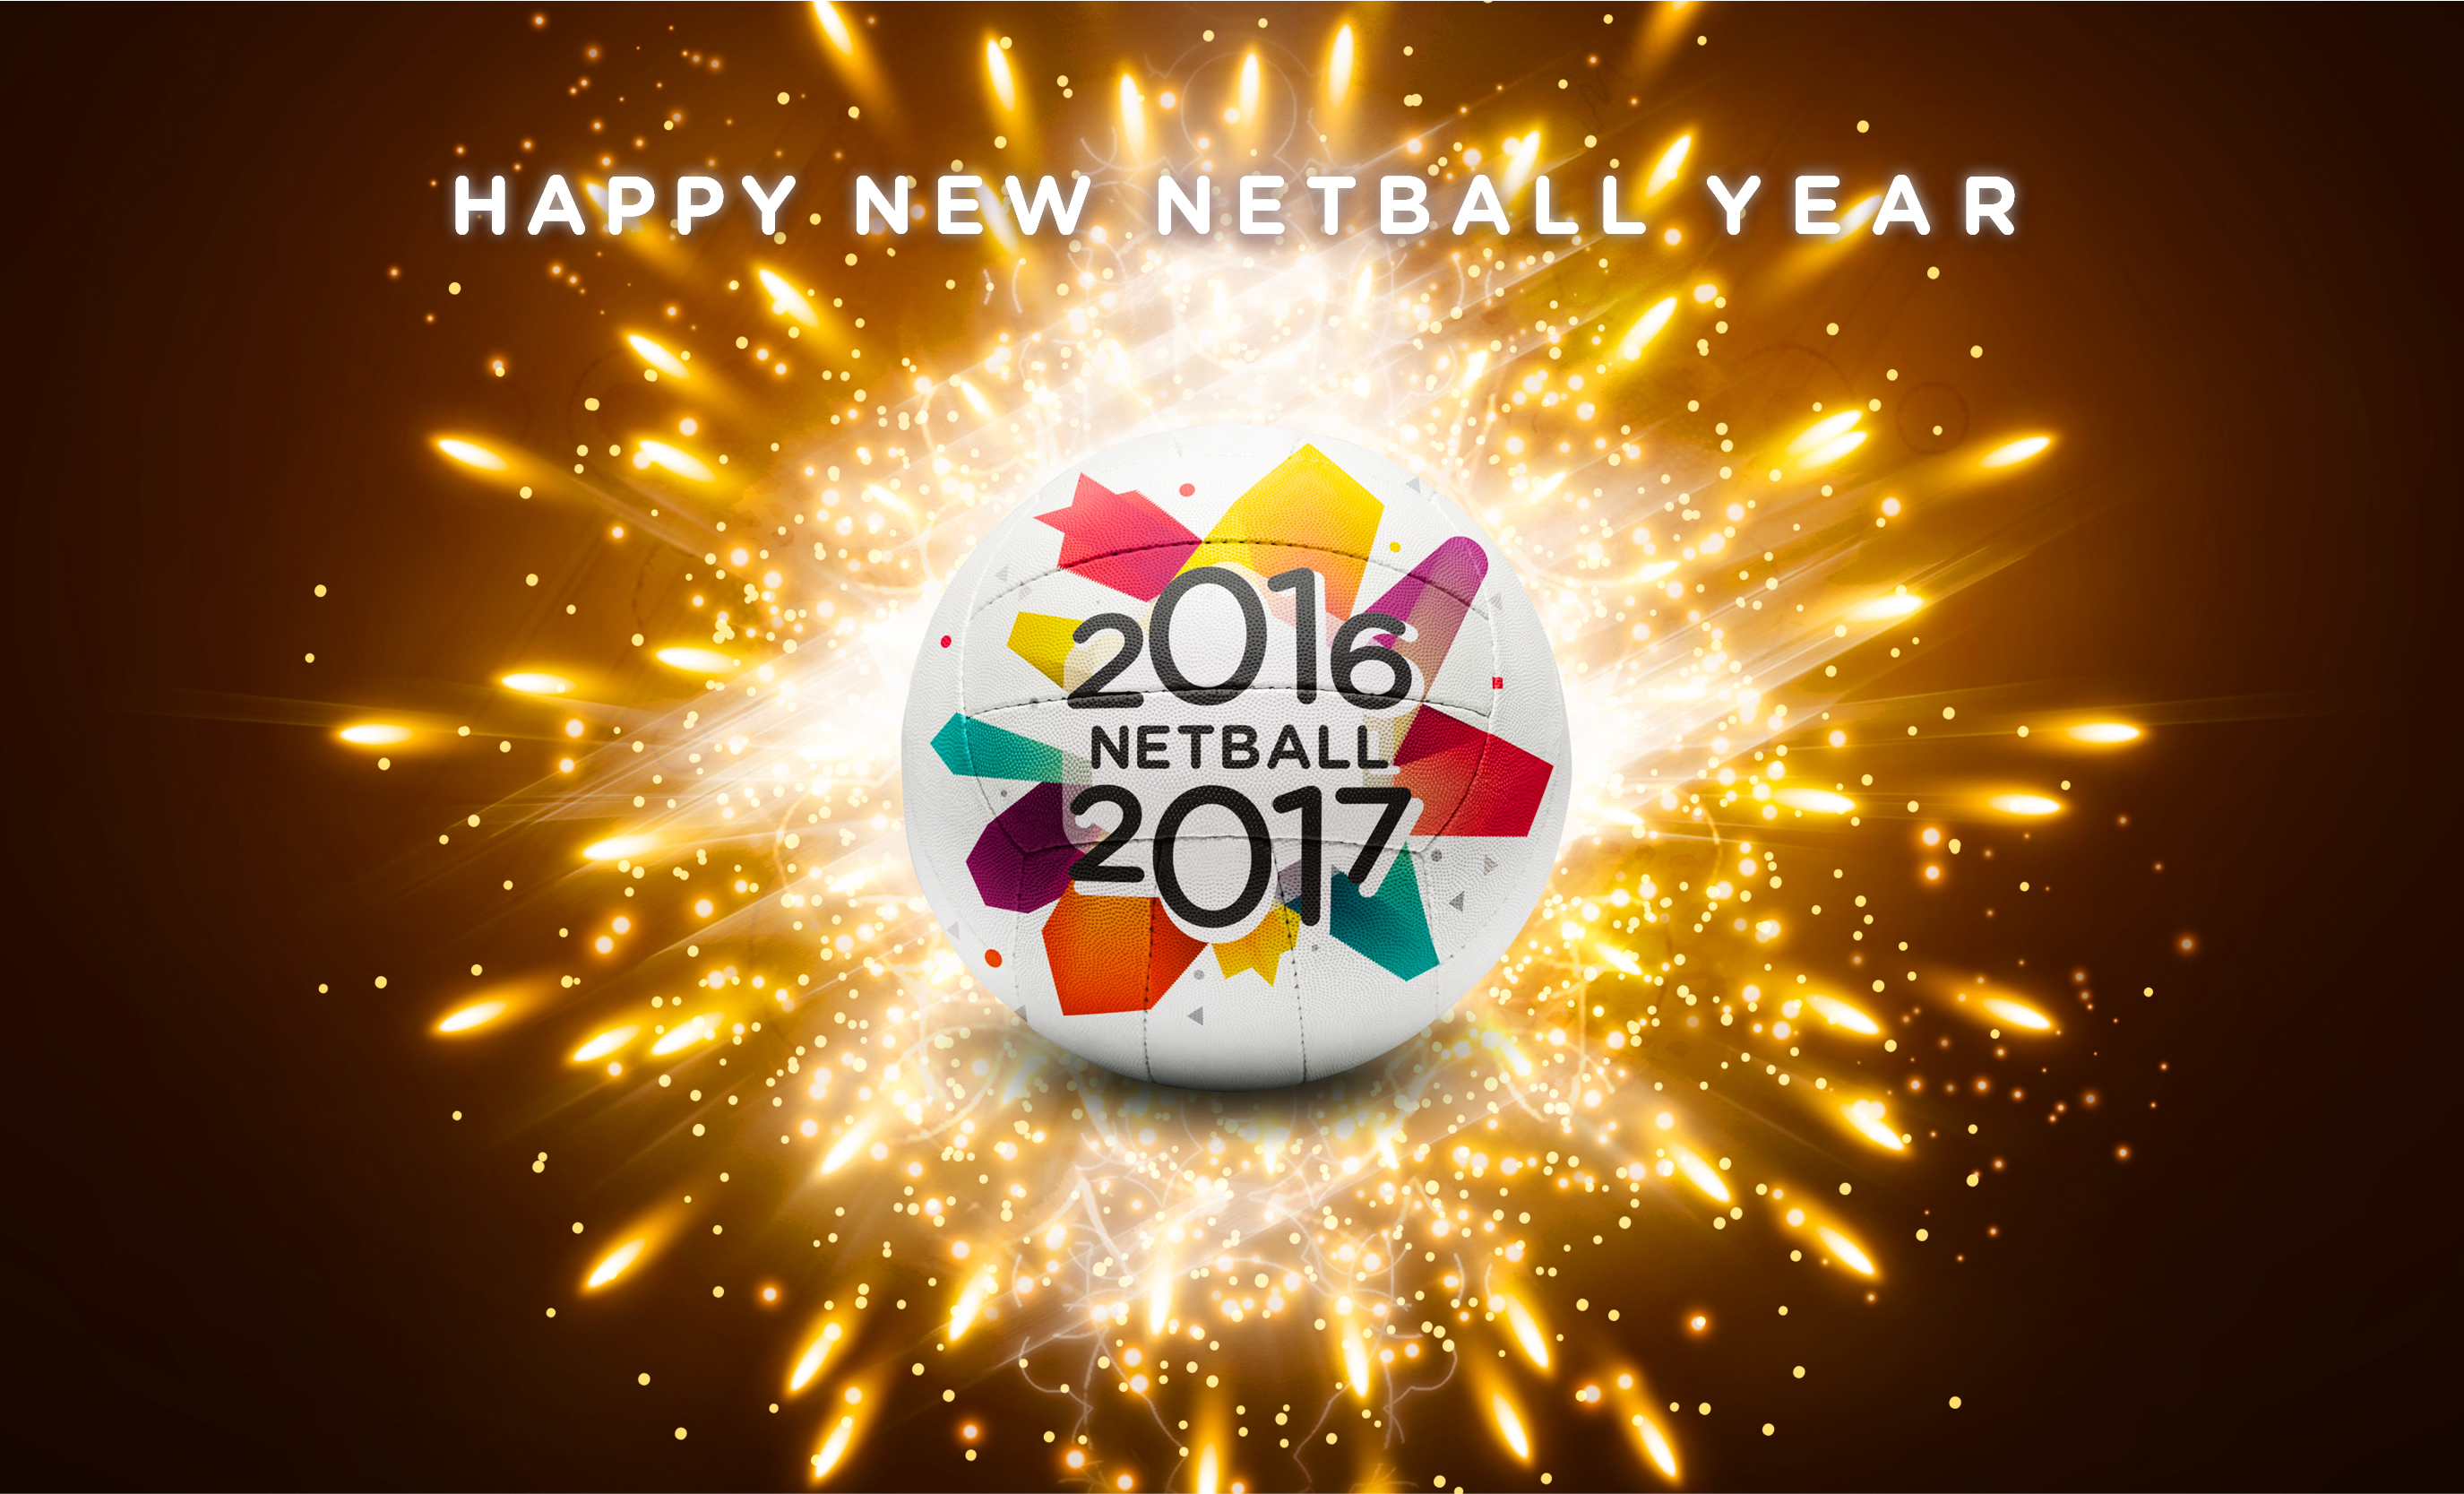 Happy Netball New Year!